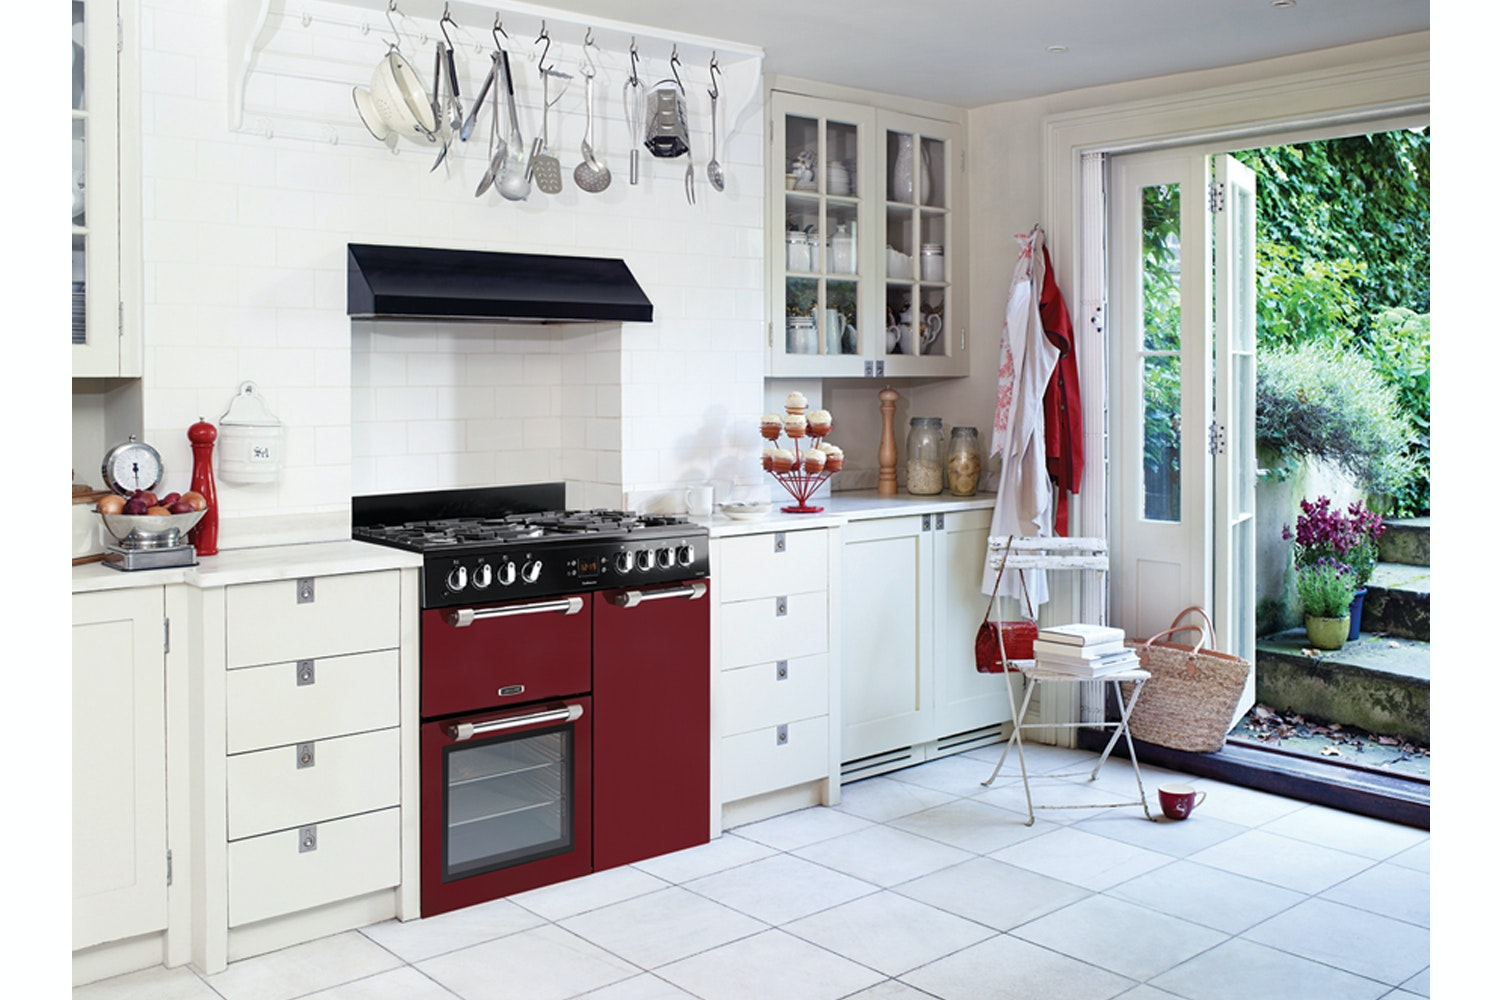 Leisure 90cm Dual Fuel Range Cooker | CK90F232R